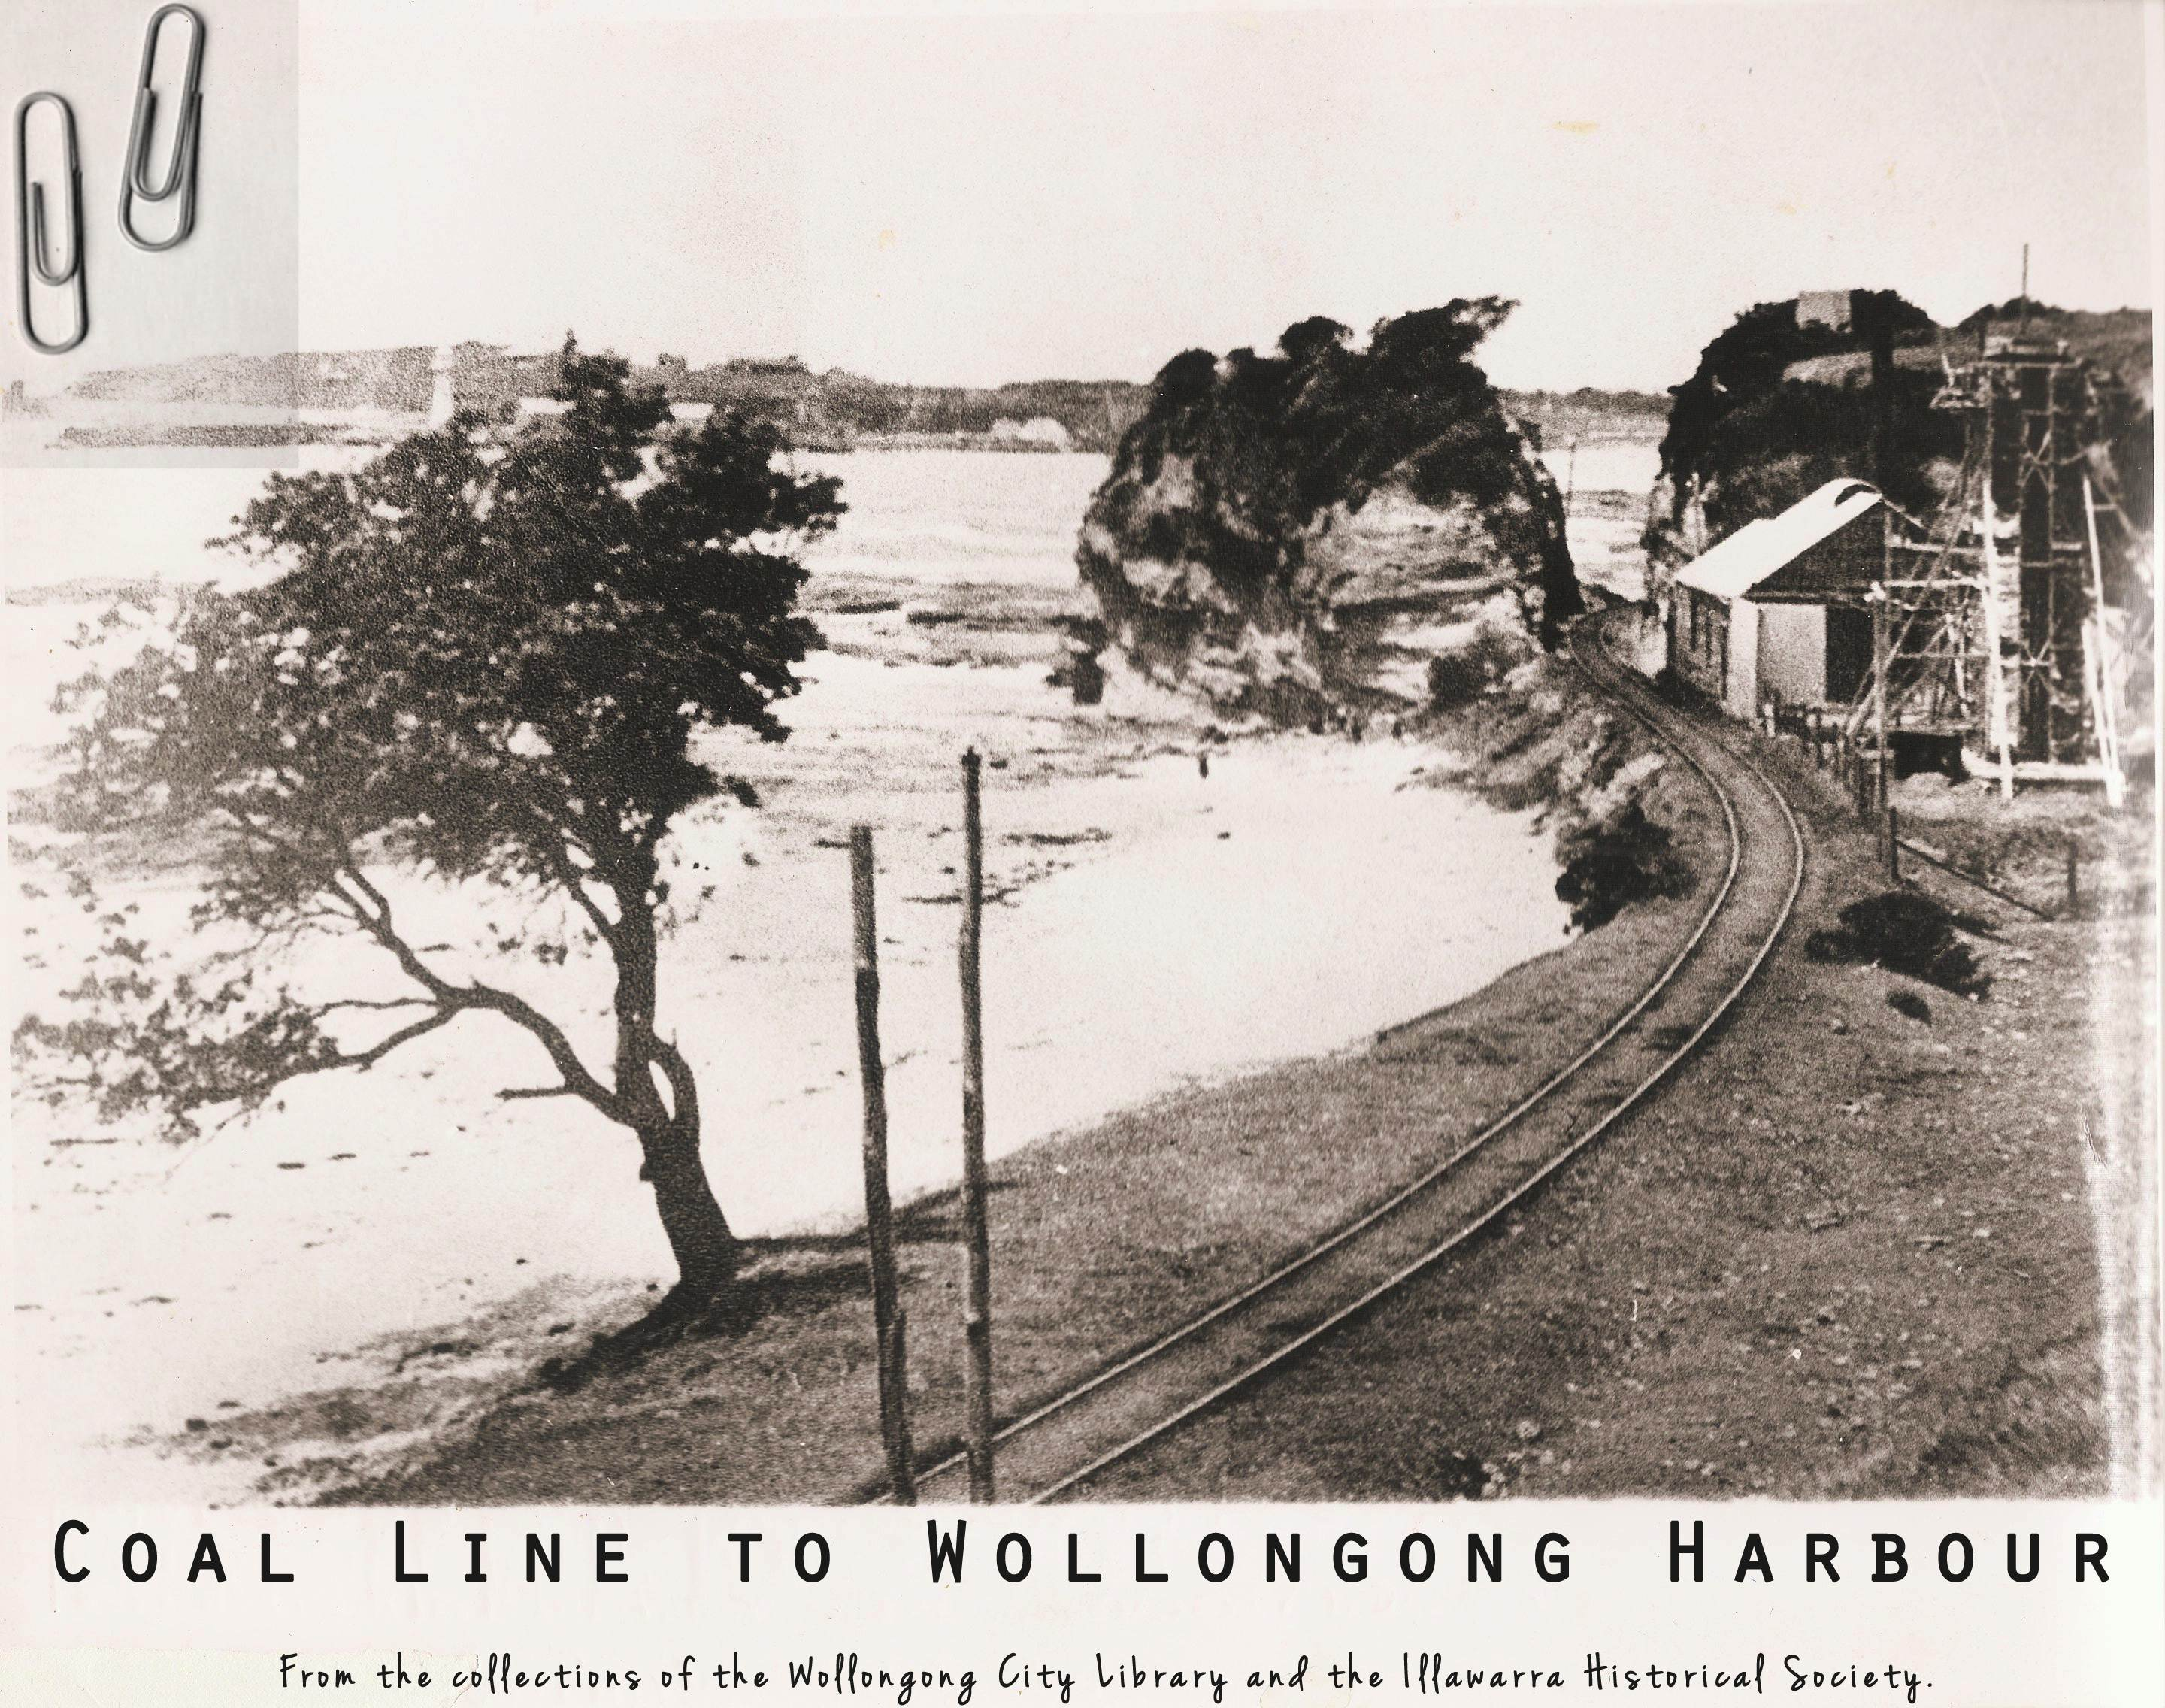 Coal line to Wollongong Harbour